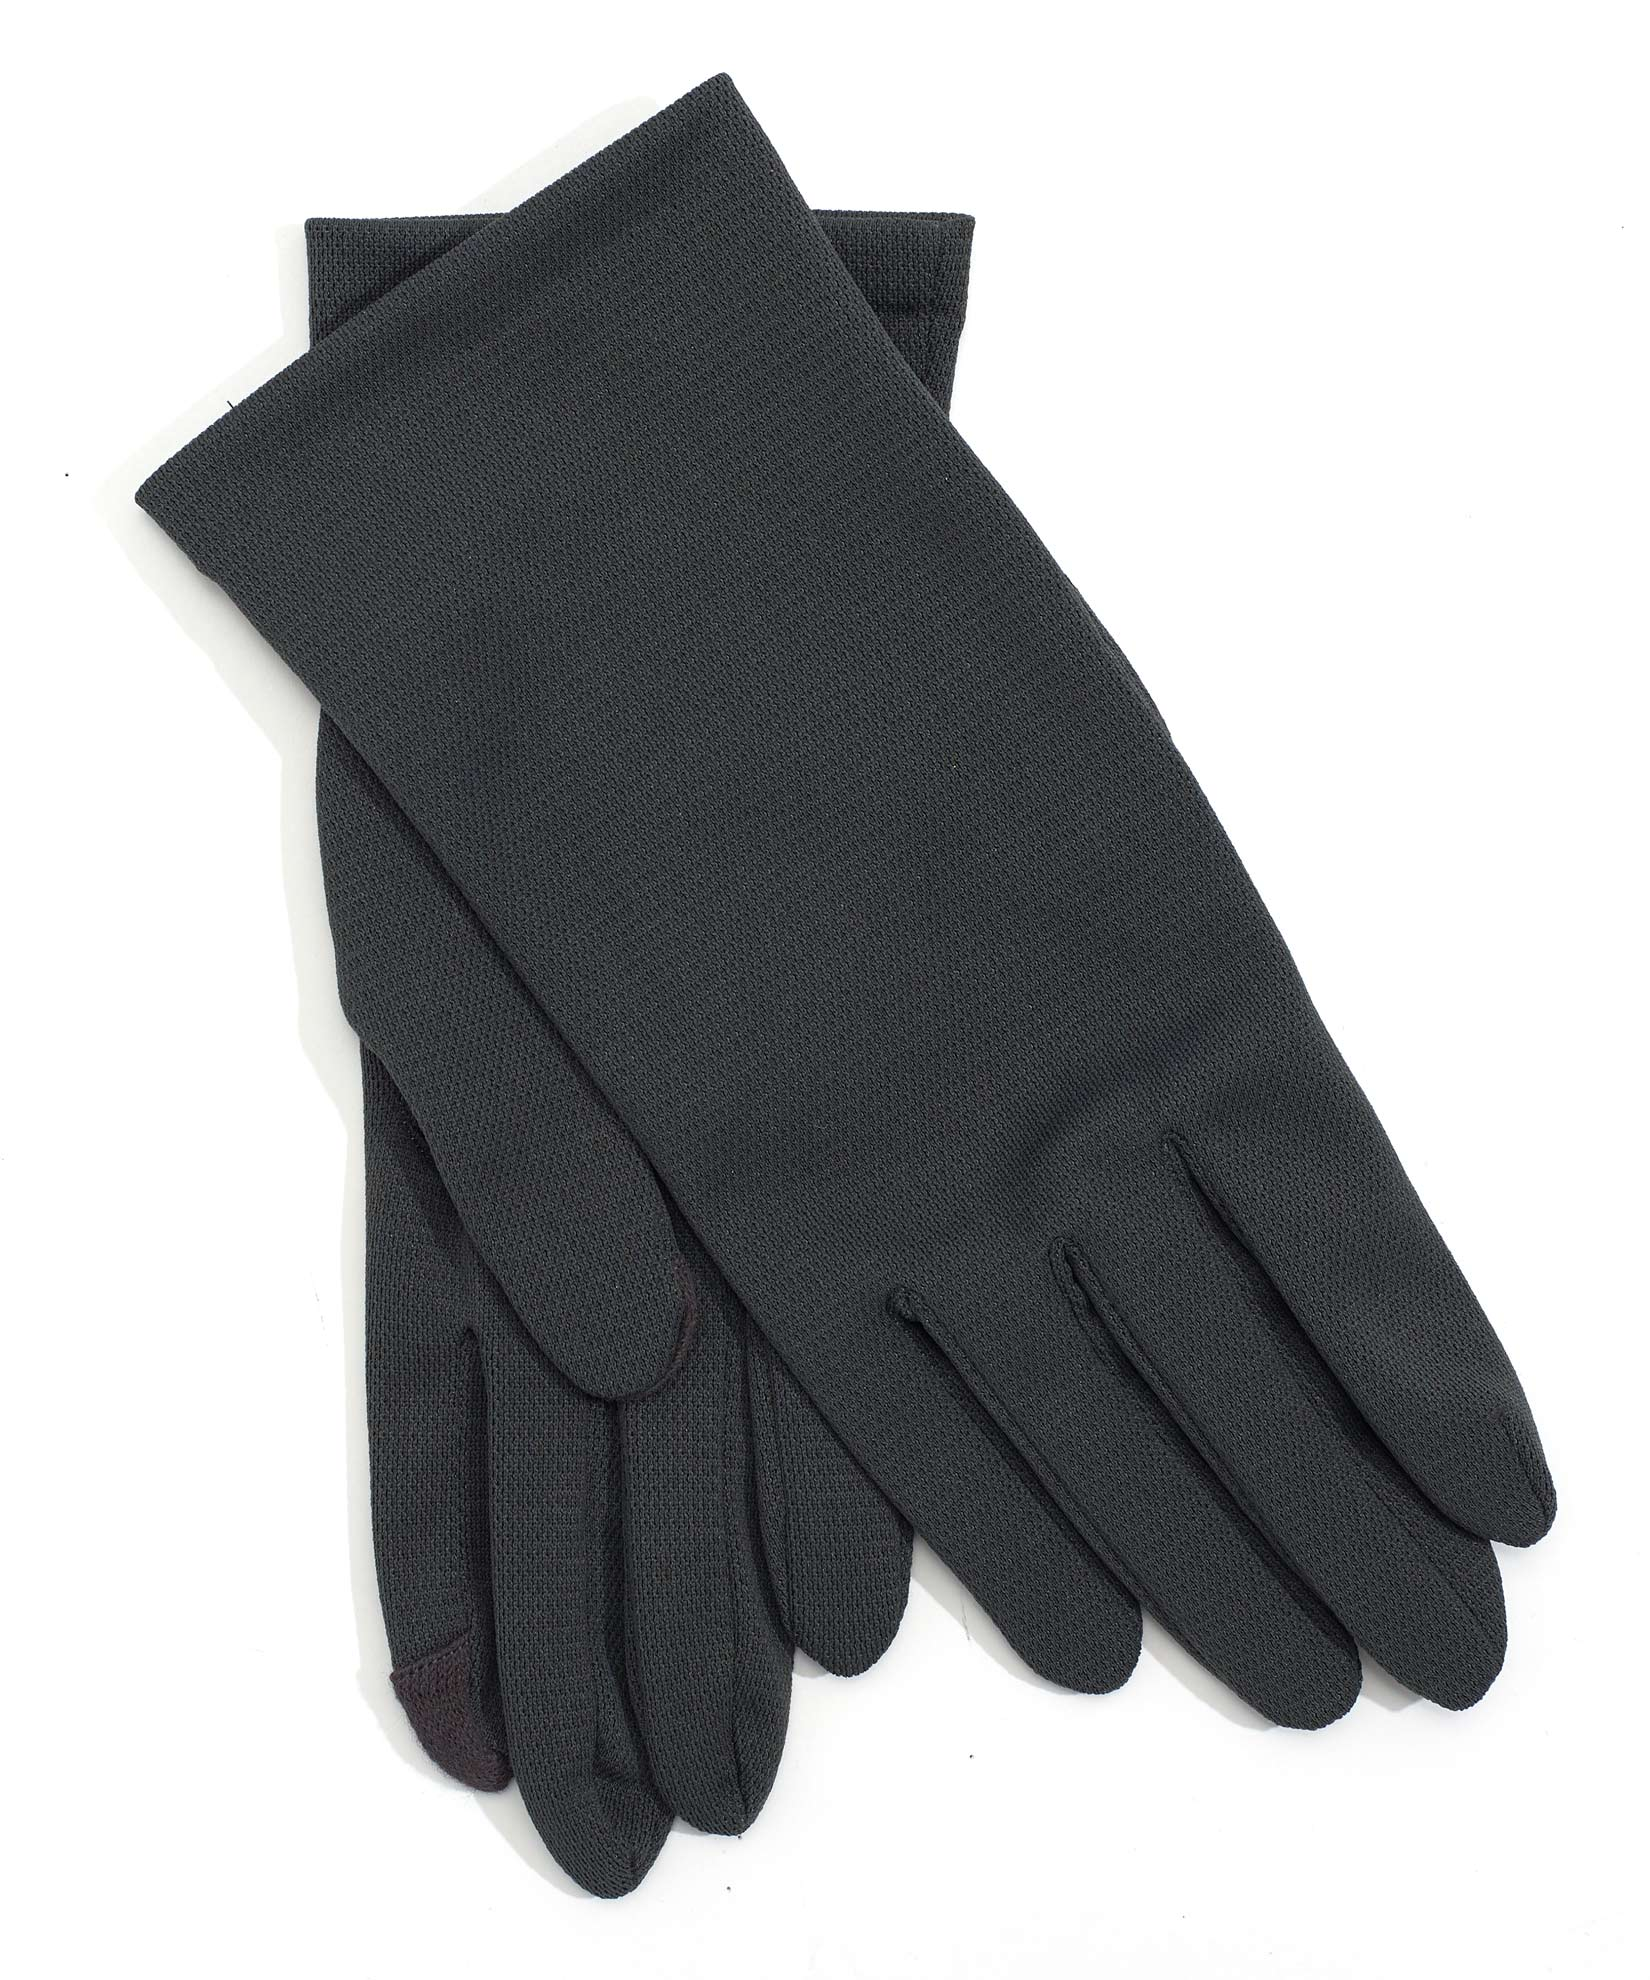 Charcoal - Washable Solid Errand Glove